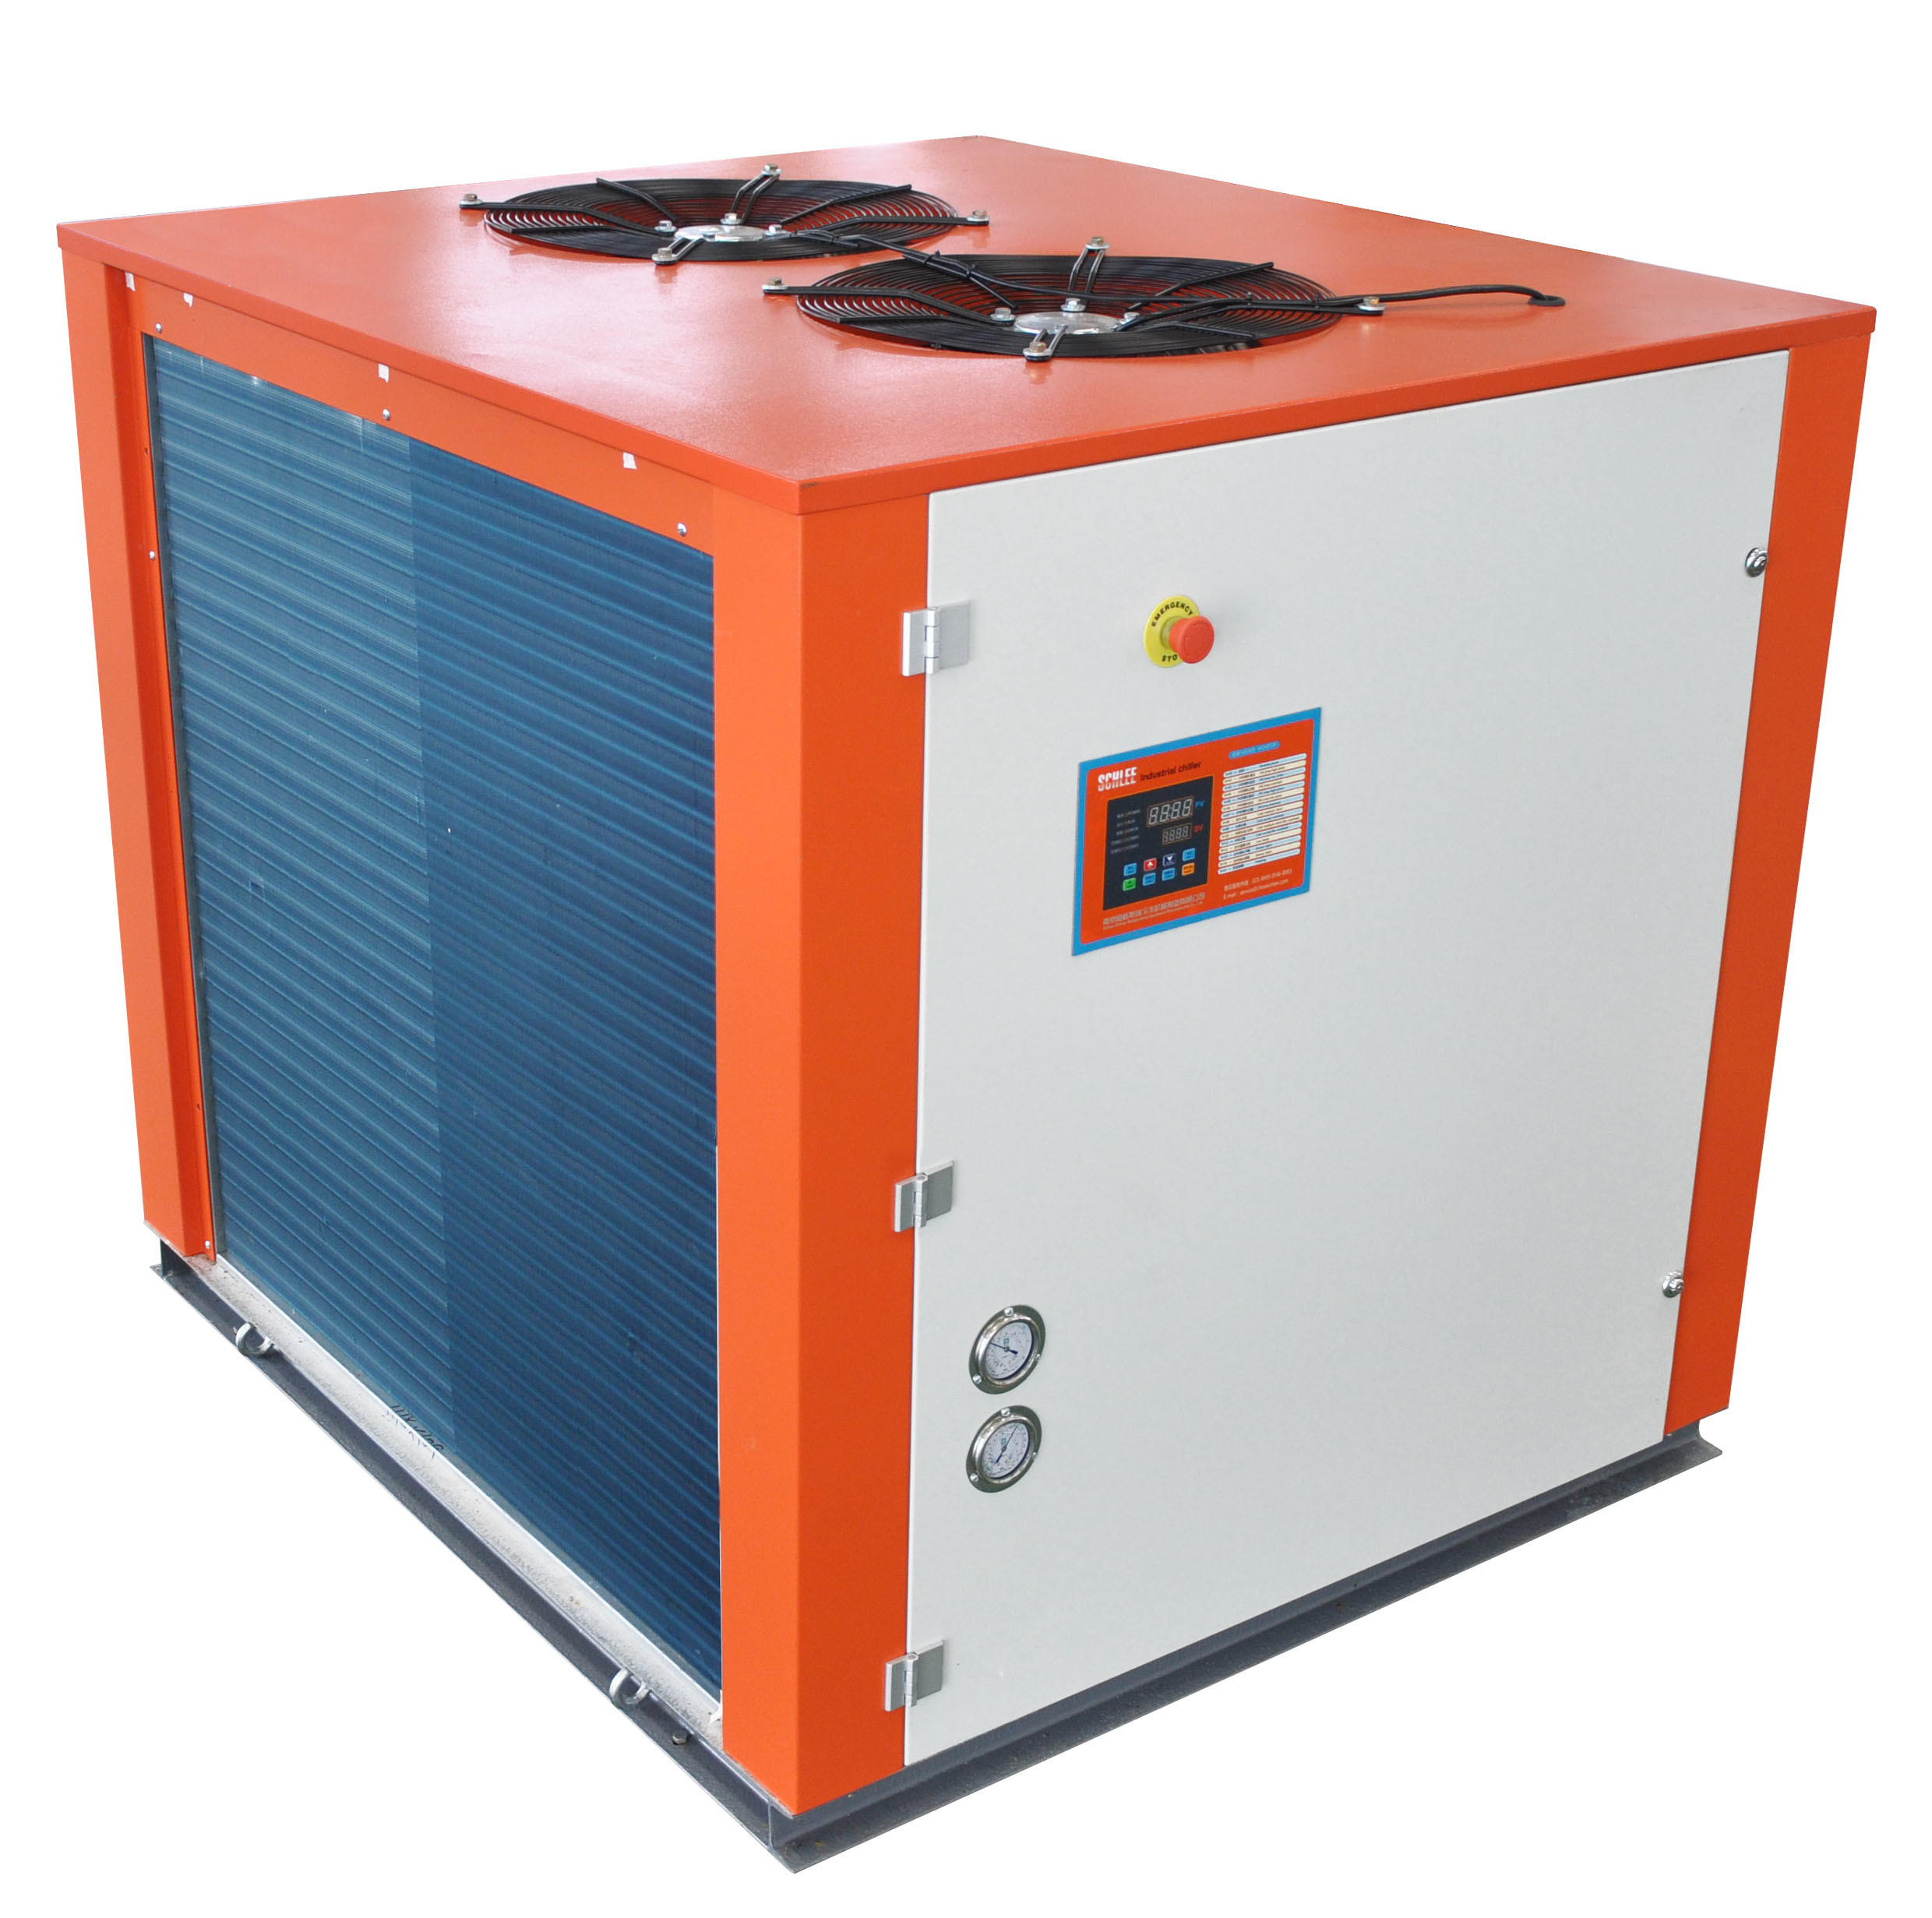 40HP Industrial Air Cooled Water Chillers for Beer Fermentation Tank